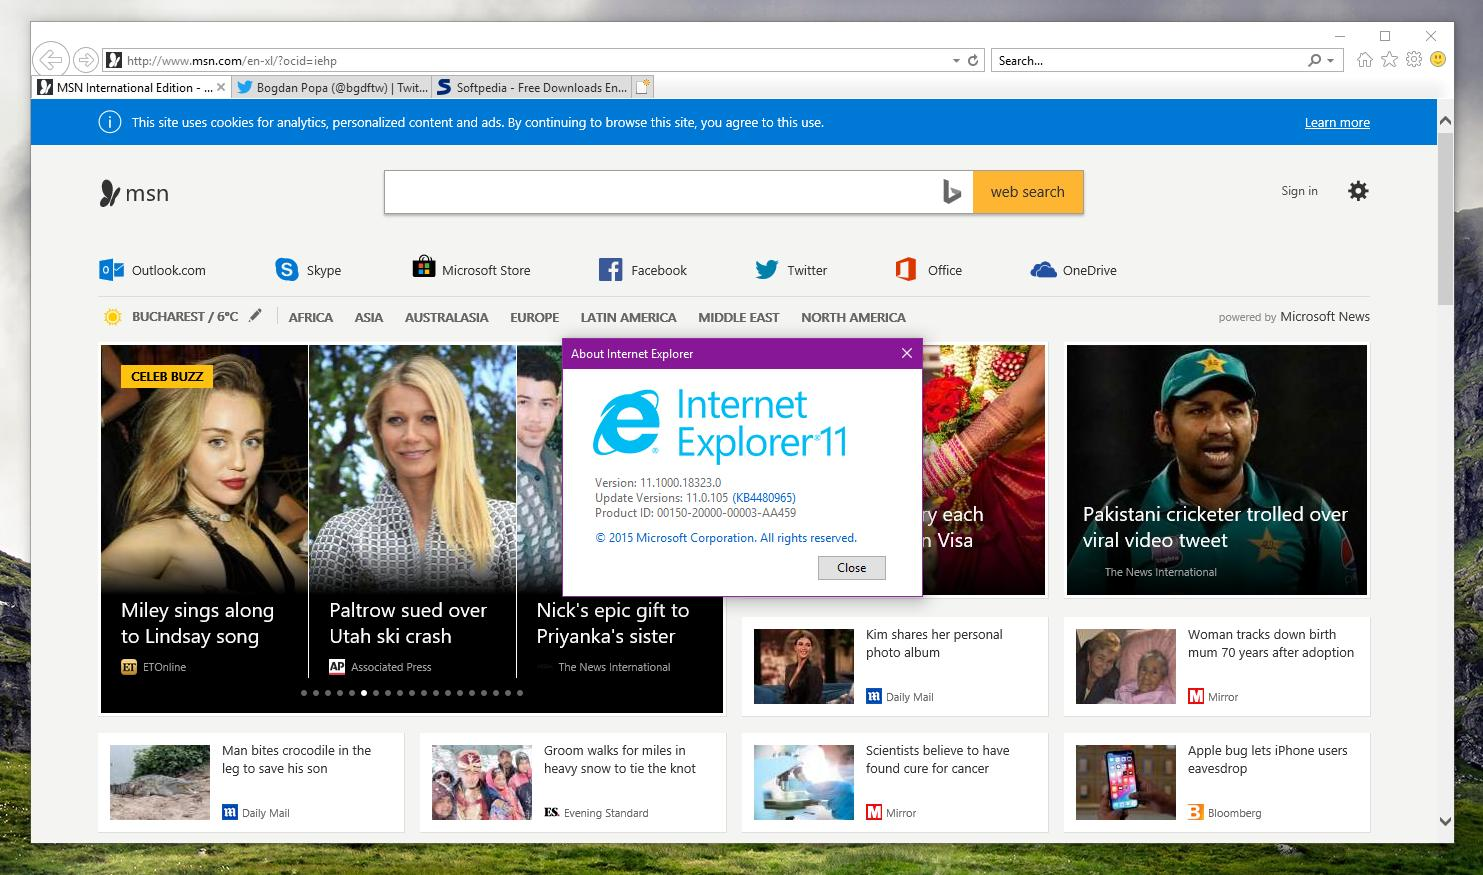 Internet Explorer 11 in Windows 10 19H1